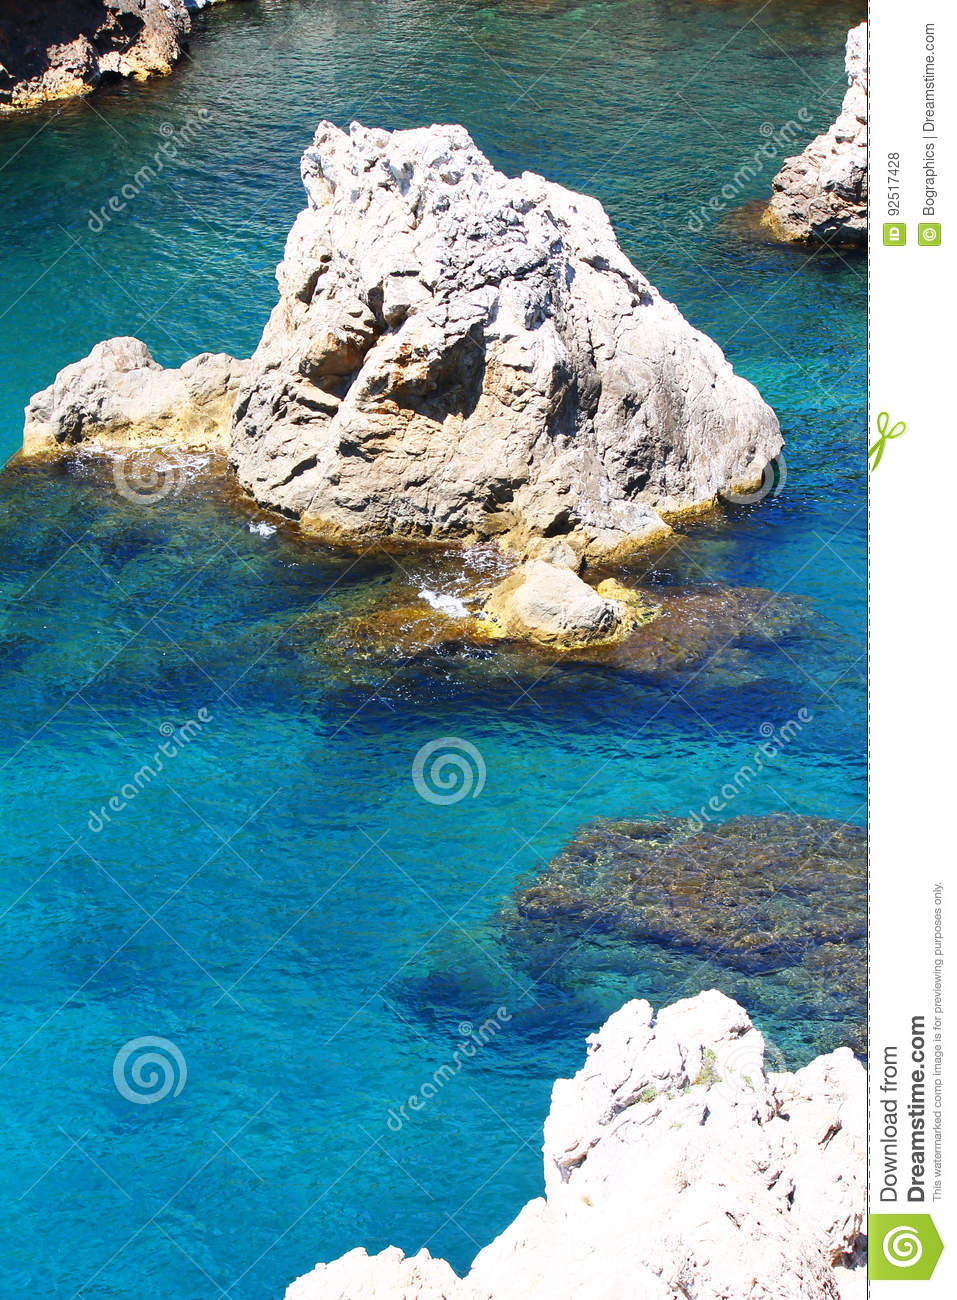 Download Deep Blue Clear Water Between Rocks Stock Photo - Image of clean, landscape: 92517428